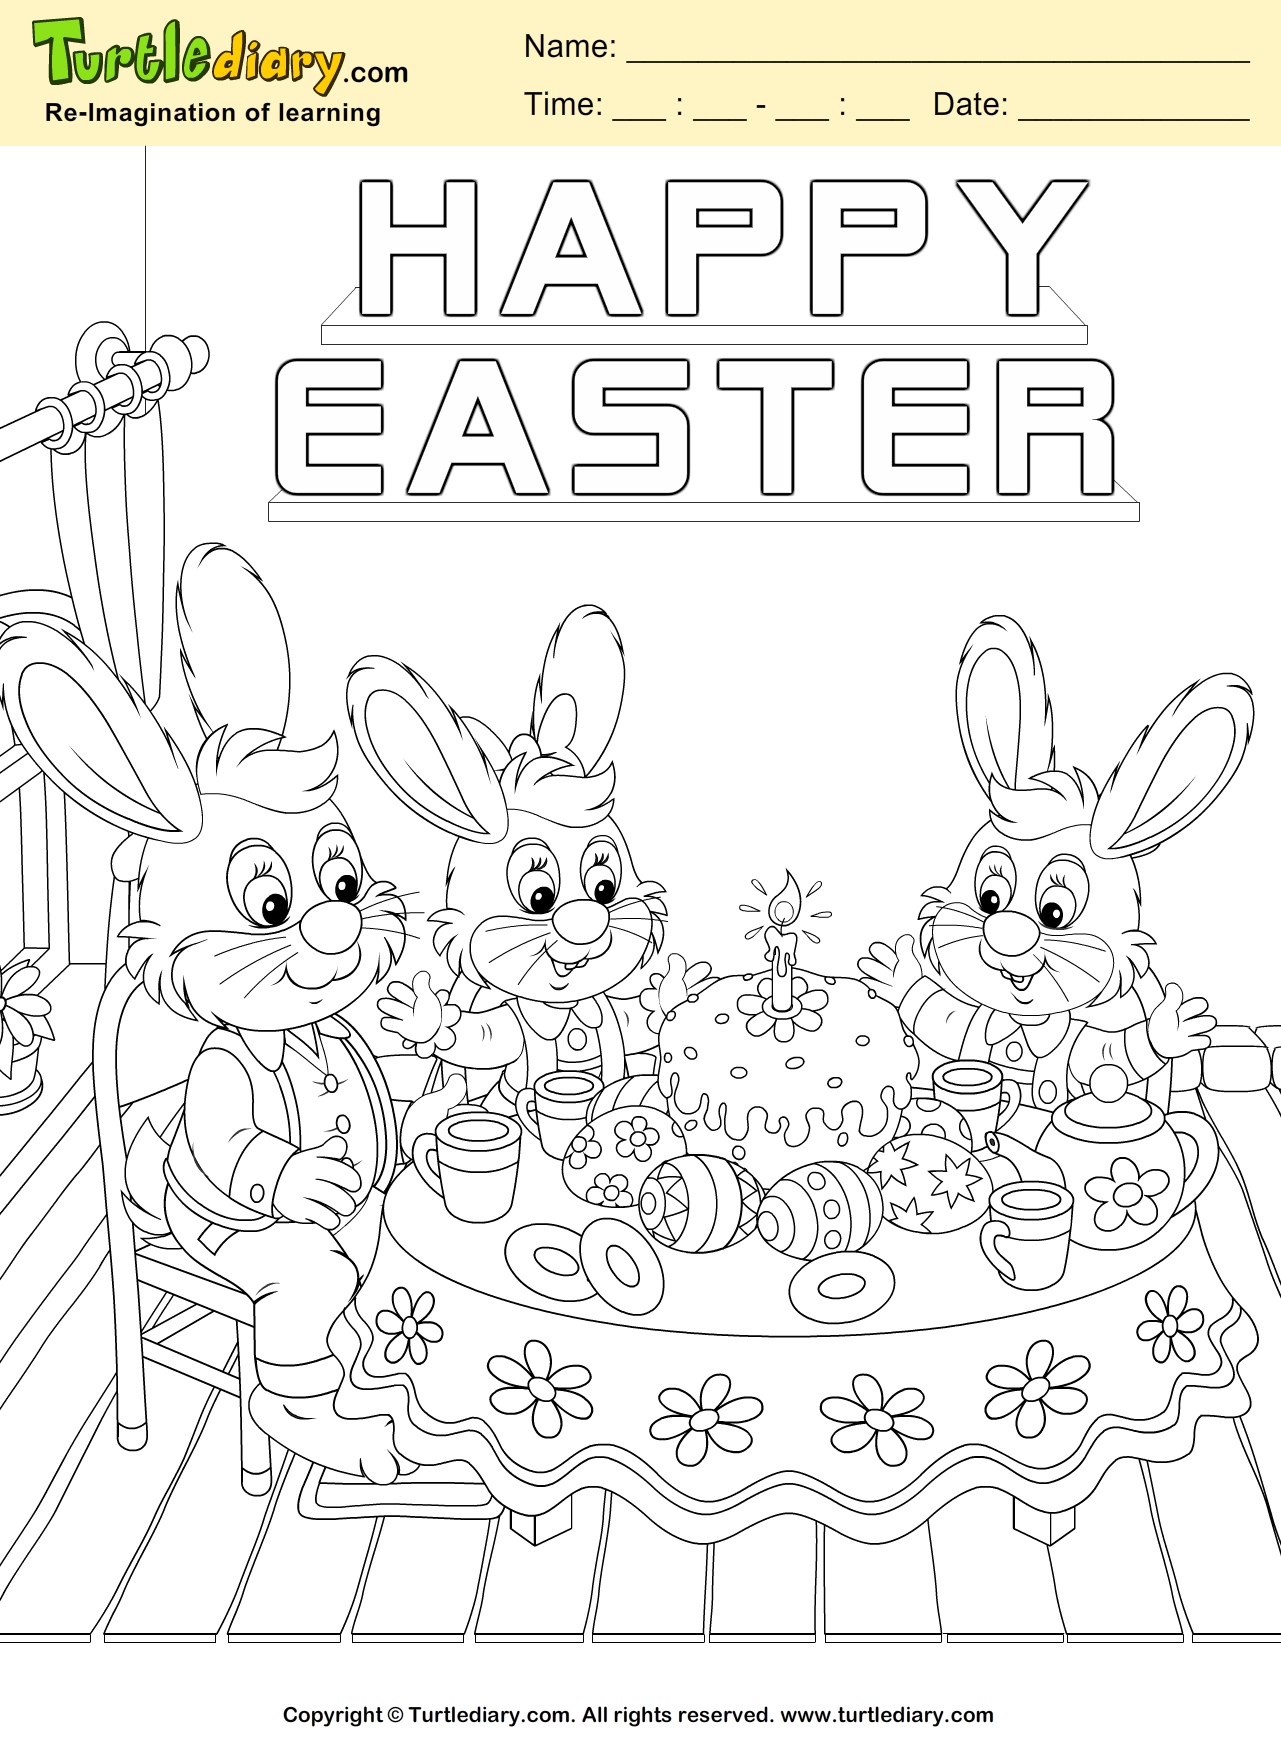 Happy Easter Bunny Coloring Sheet | Turtle Diary